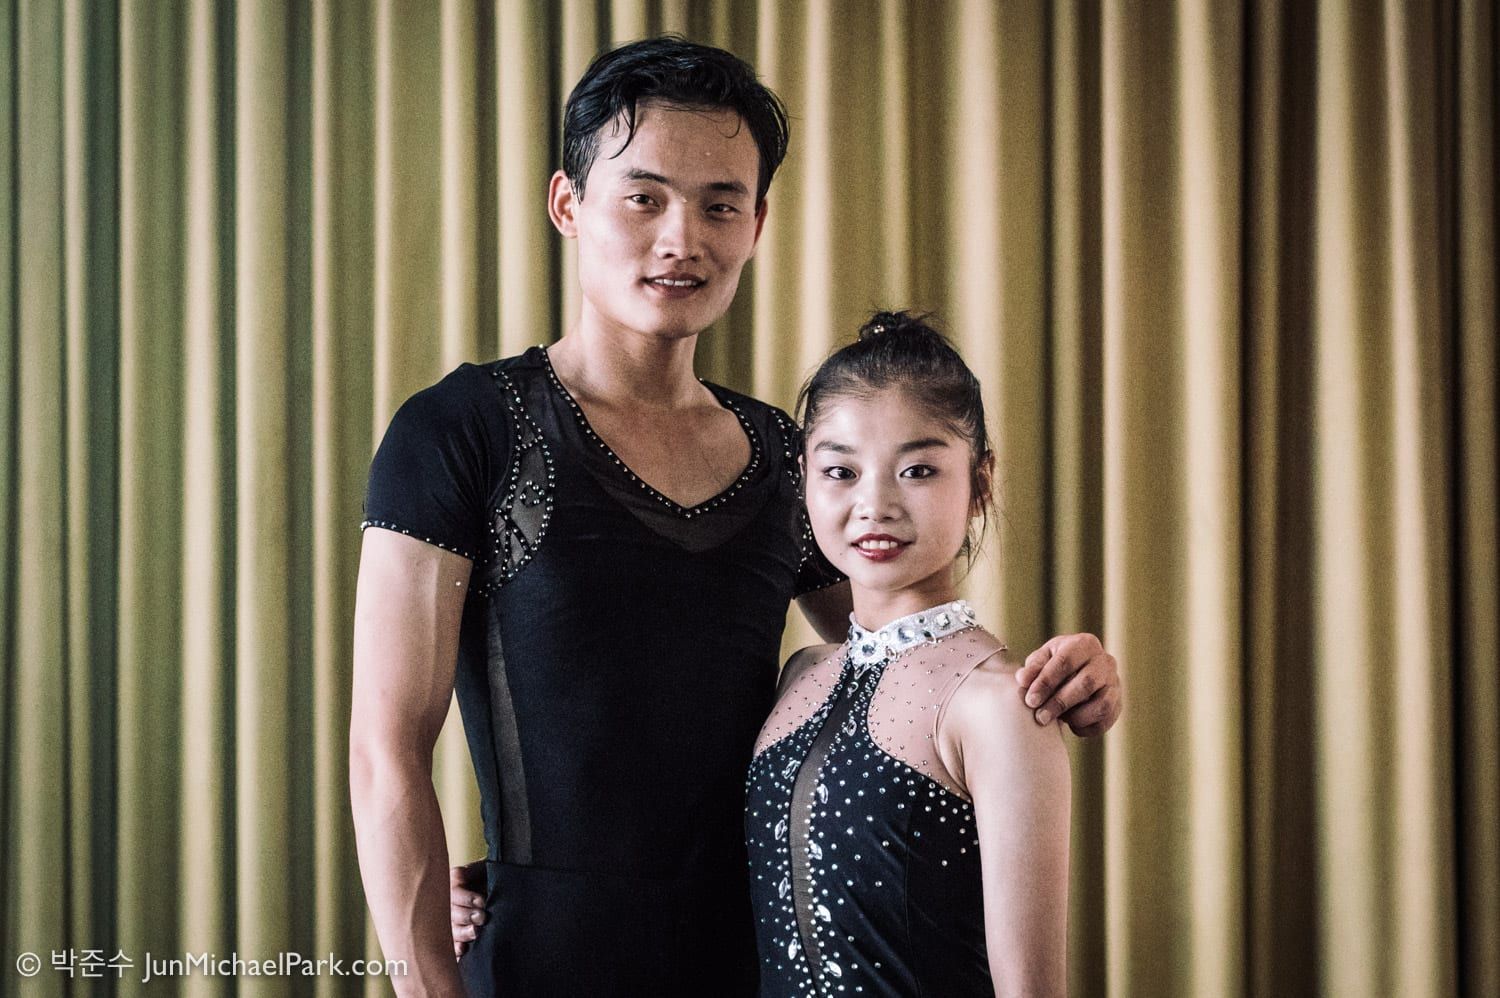 After their long program, North Korean skaters Ryom Tae-ok, right, and Kim Ju-sik pose for a portrait after an interview in the mixed zone in the Eissportzentrum, Oberstdorf, Germany. For The New York Times. 29 Sep 2017.